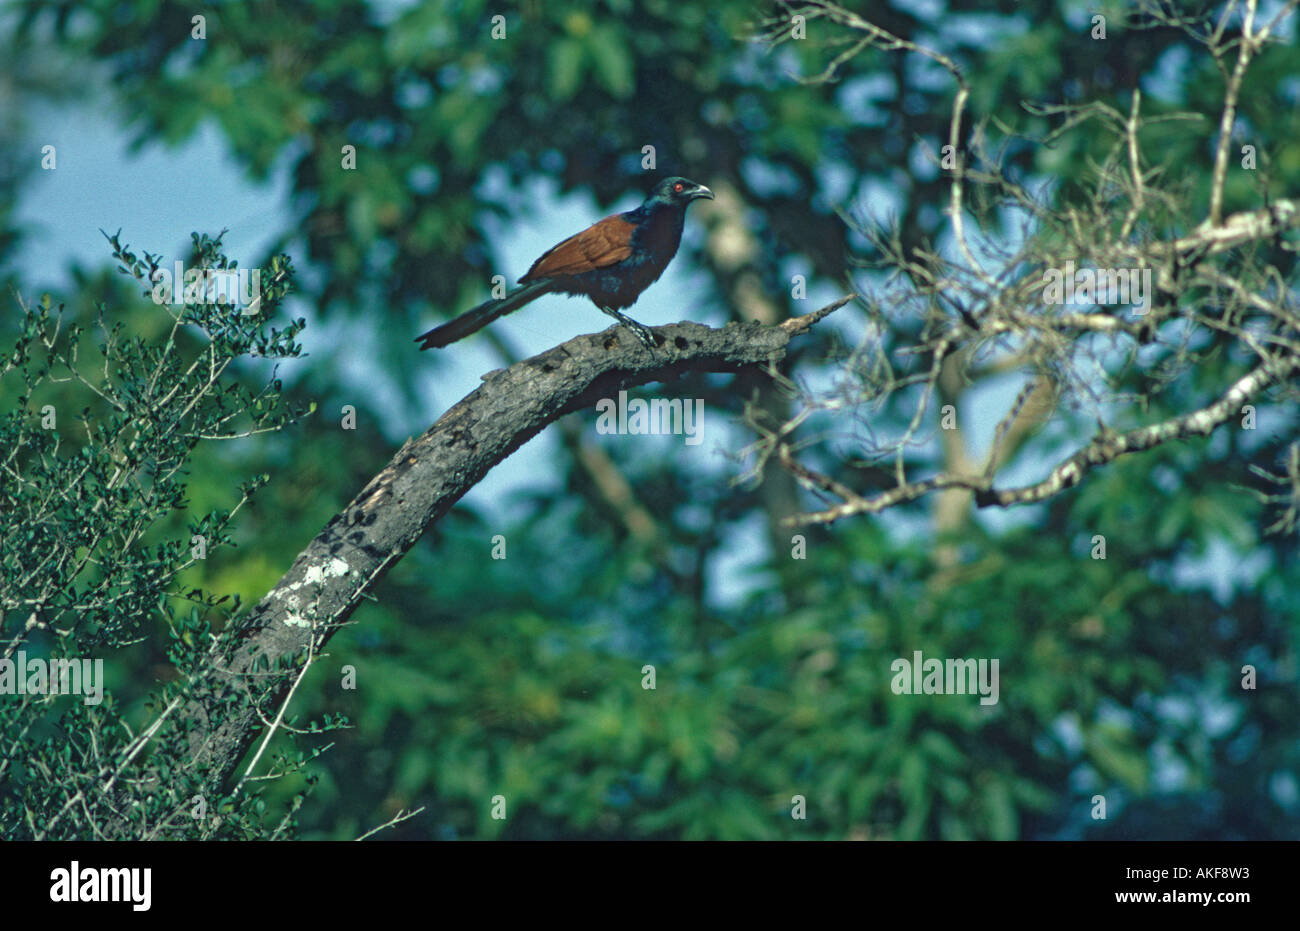 Southern Coucal Centropus sinensis Perched on branch - Stock Image